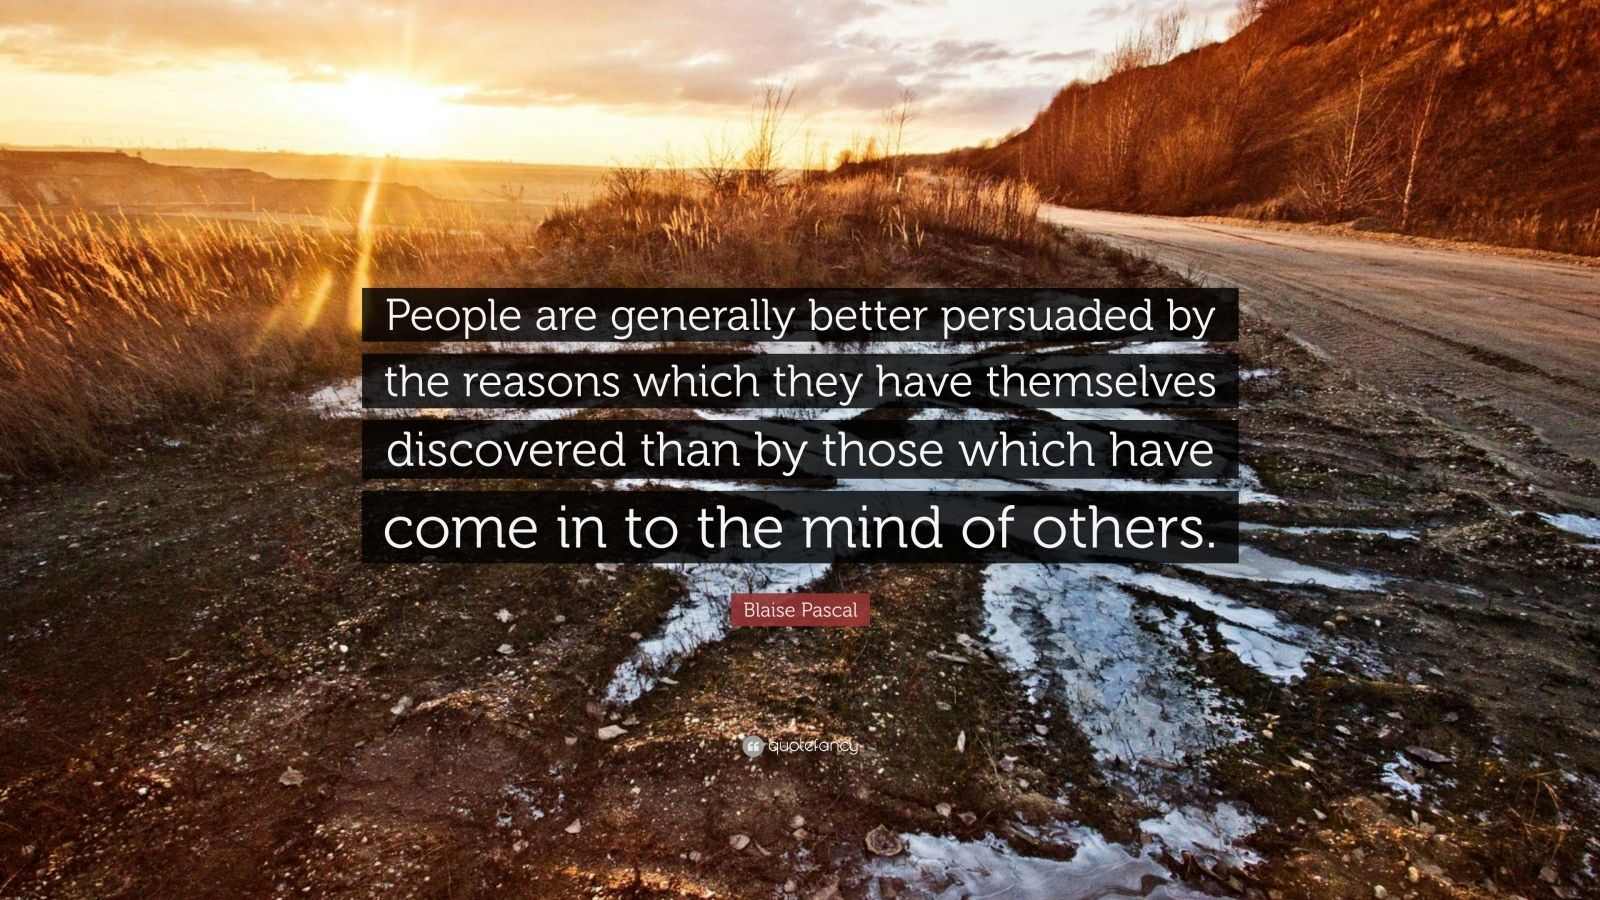 """Blaise Pascal Quote: """"People are generally better persuaded by the reasons which they have themselves discovered than by those which have come in to the mind of others."""""""